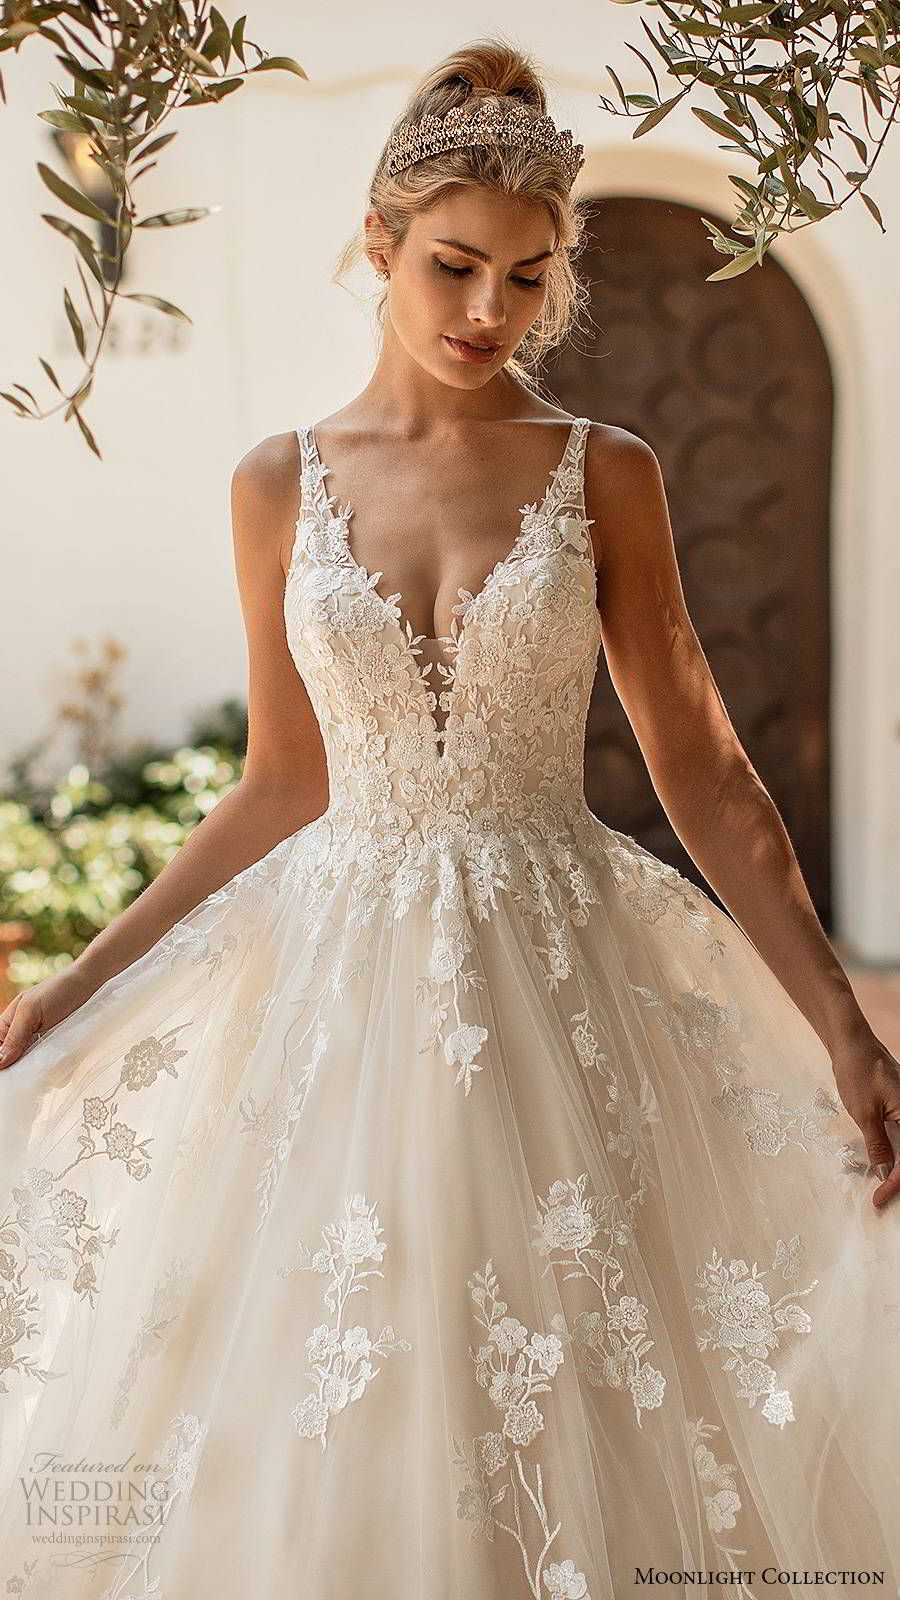 Moonlight Collection Spring 2020 Wedding Dresses